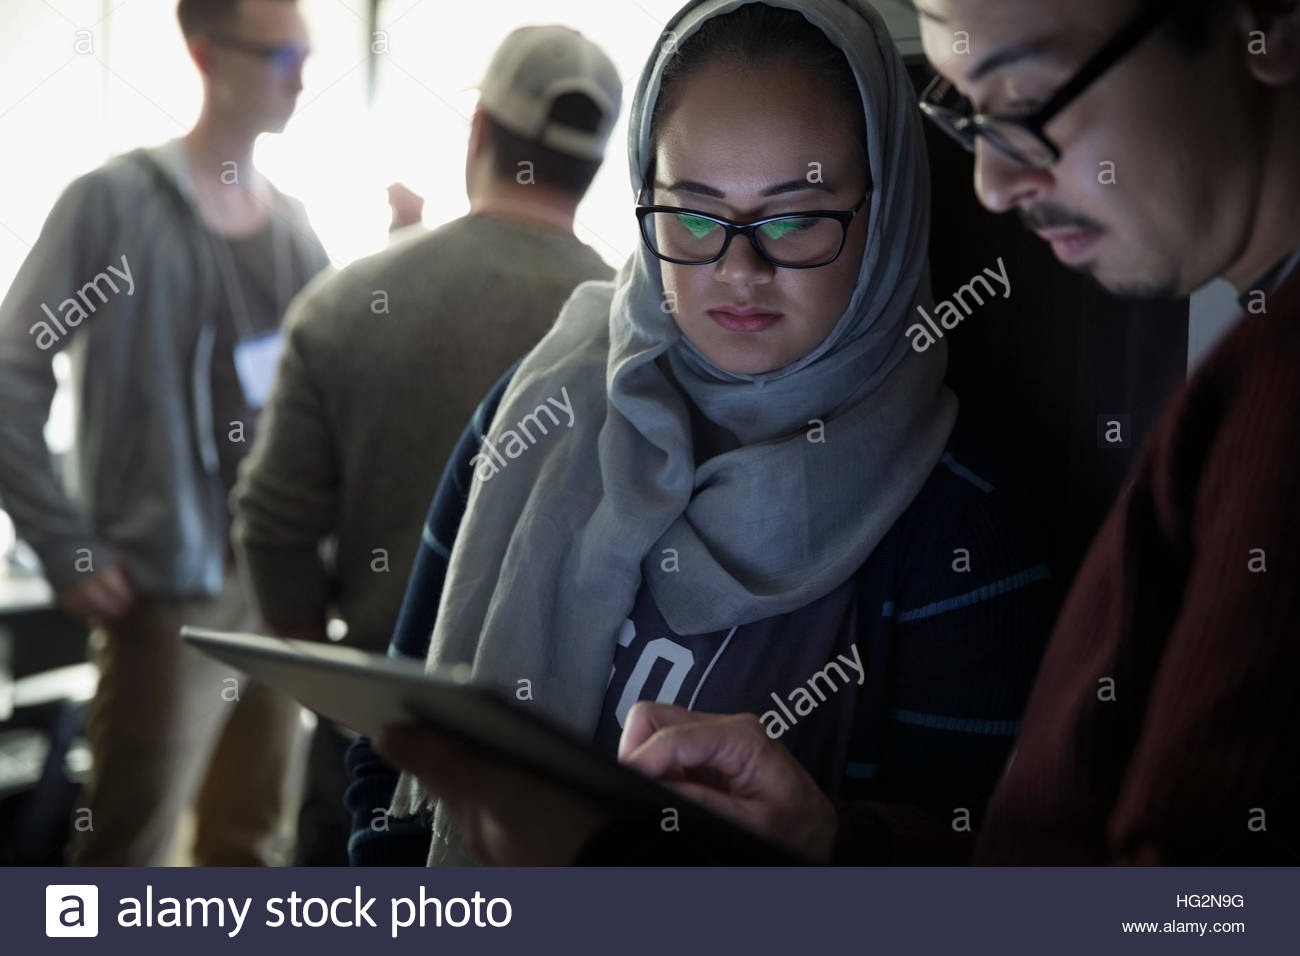 311740e6e8 Female hacker in hijab working with teammate at hackathon using digital  tablet - Stock Image